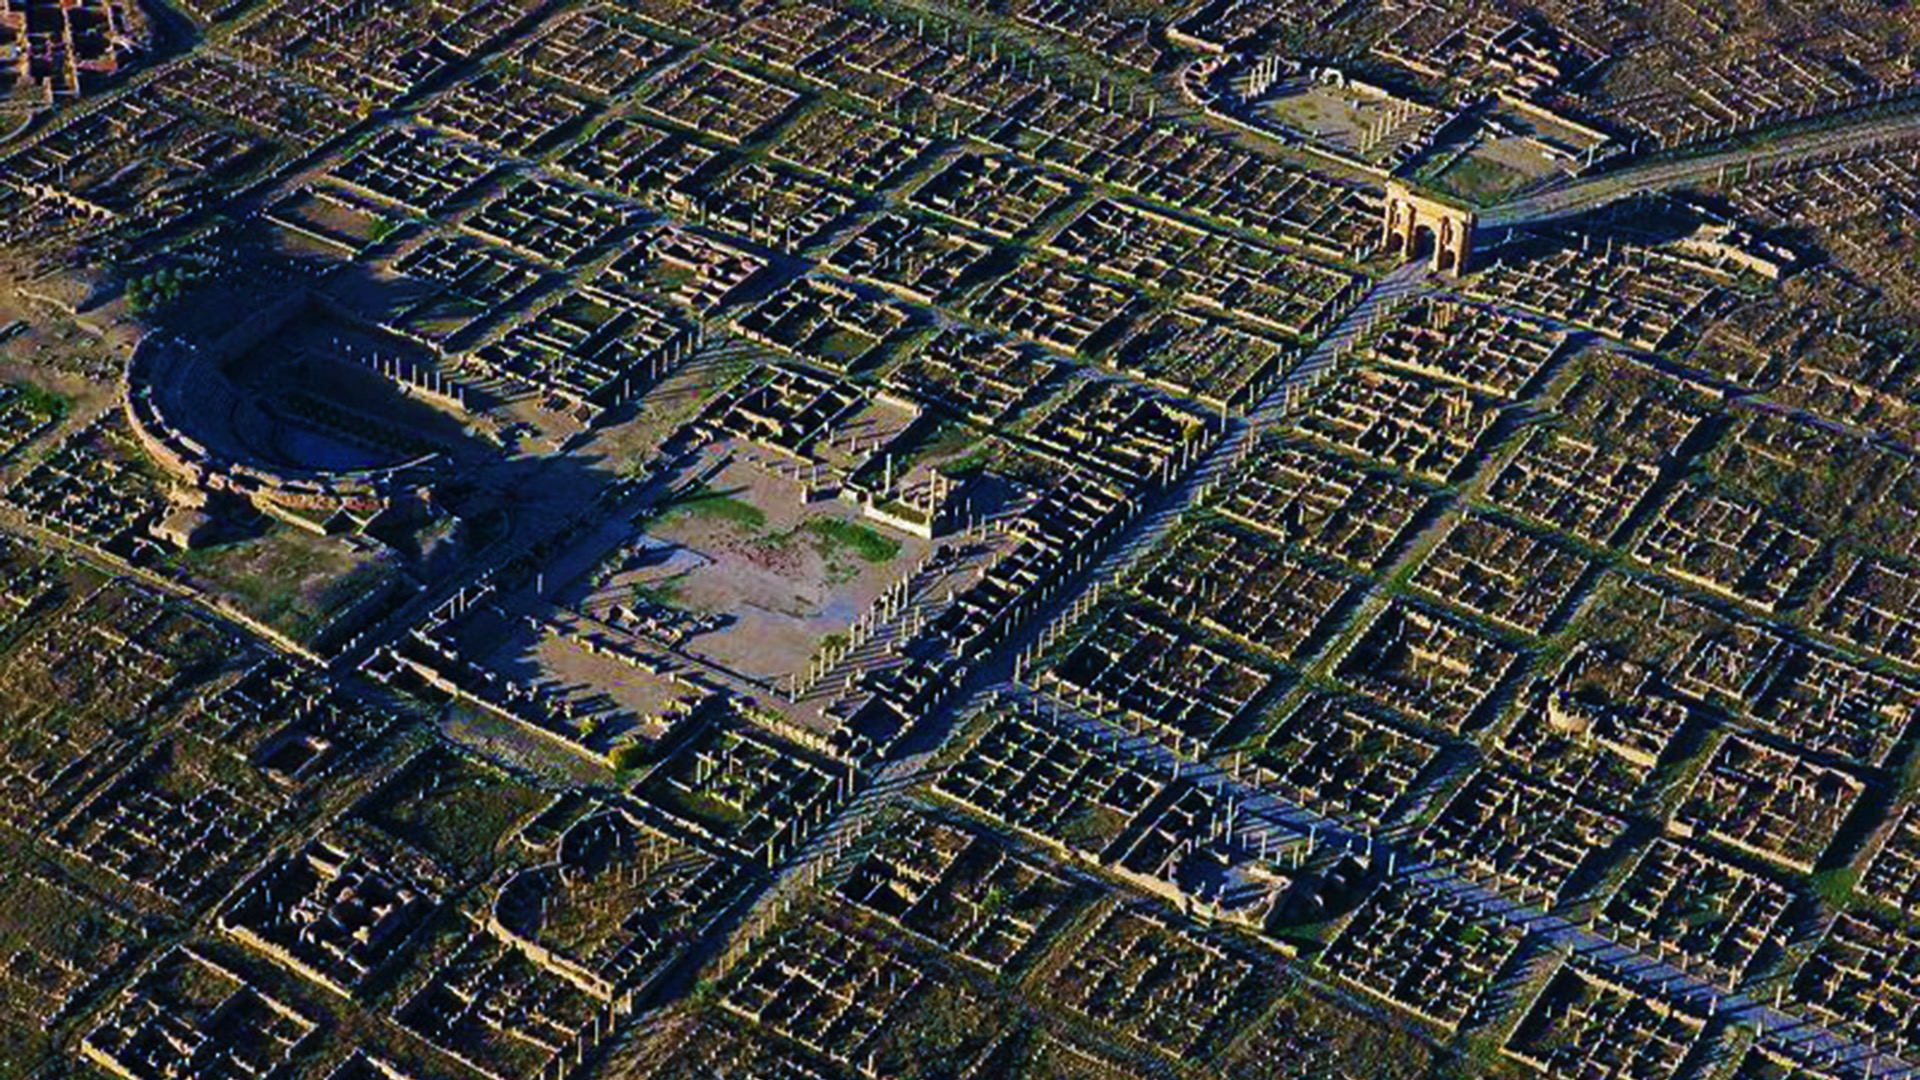 aerial view of ancient city grid